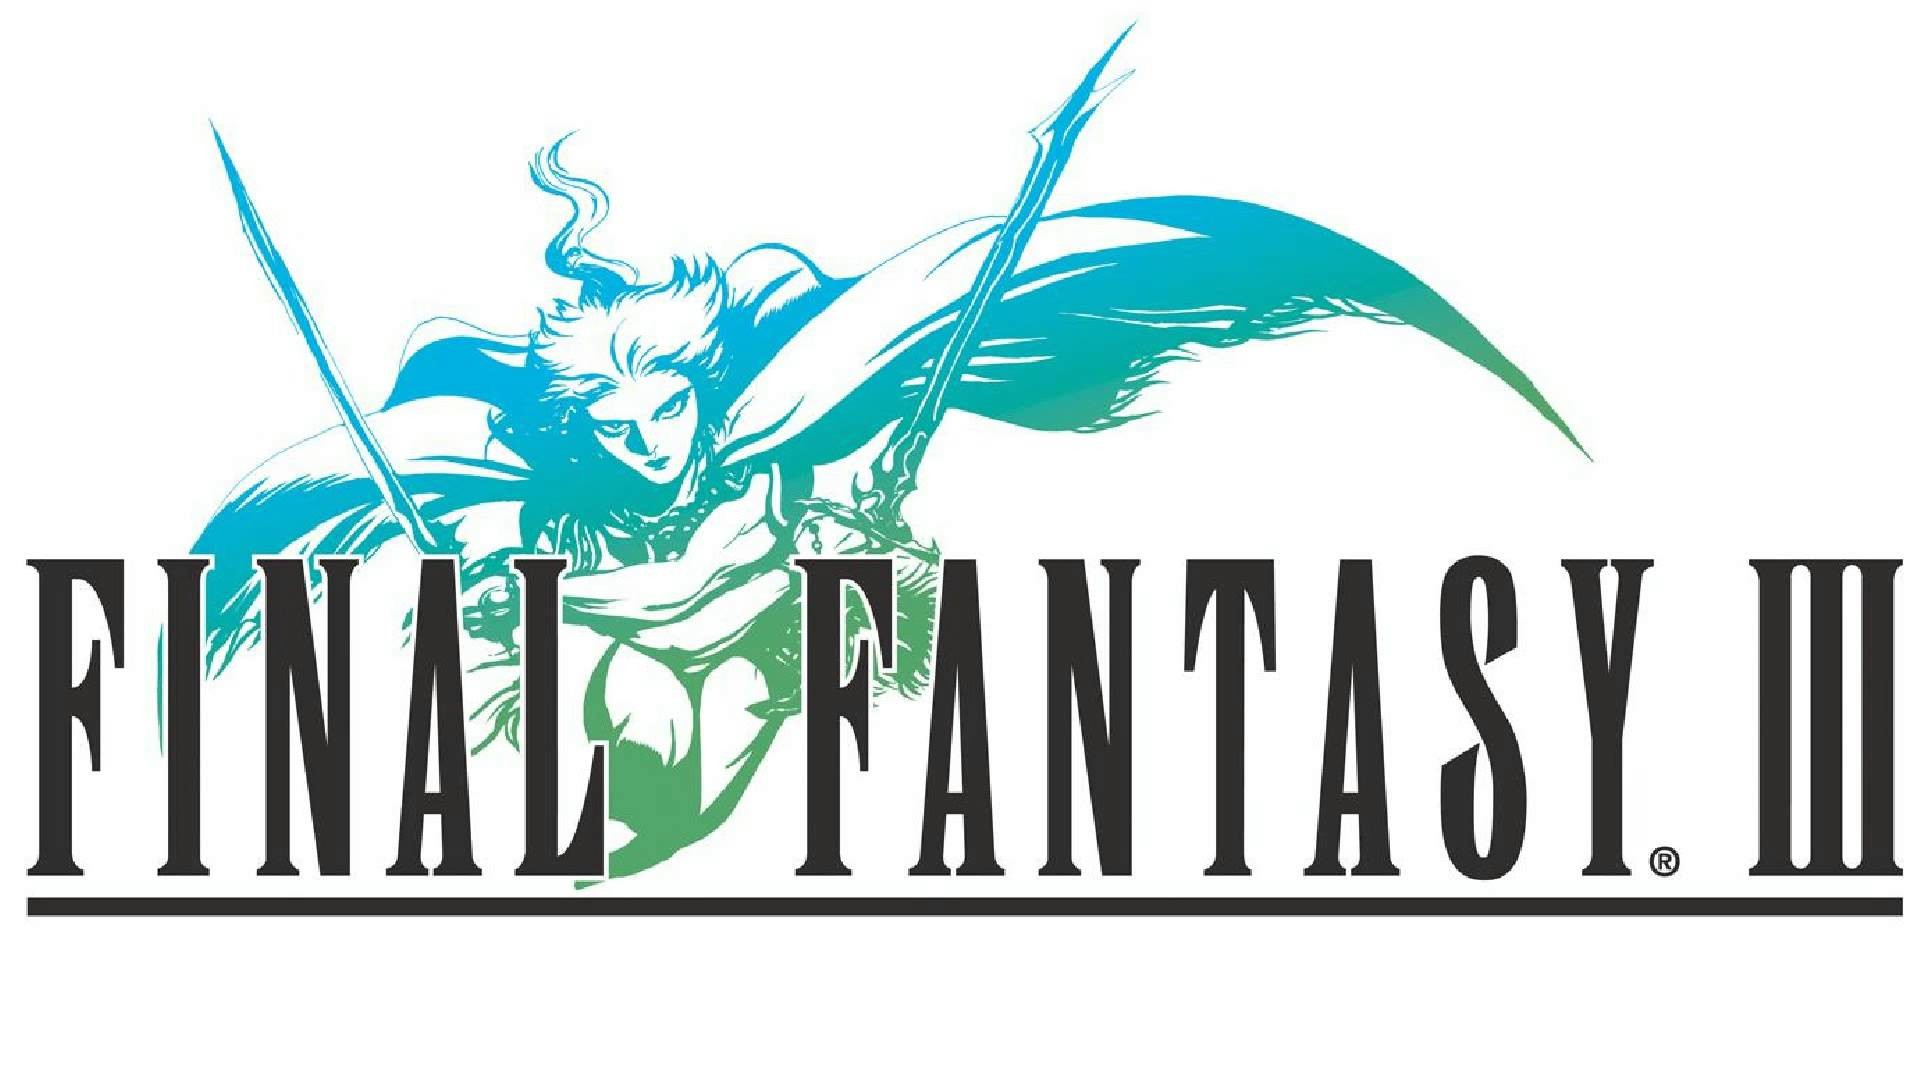 1920x1080 Final Fantasy III HD Wallpaper 15 - 1920 X 1080